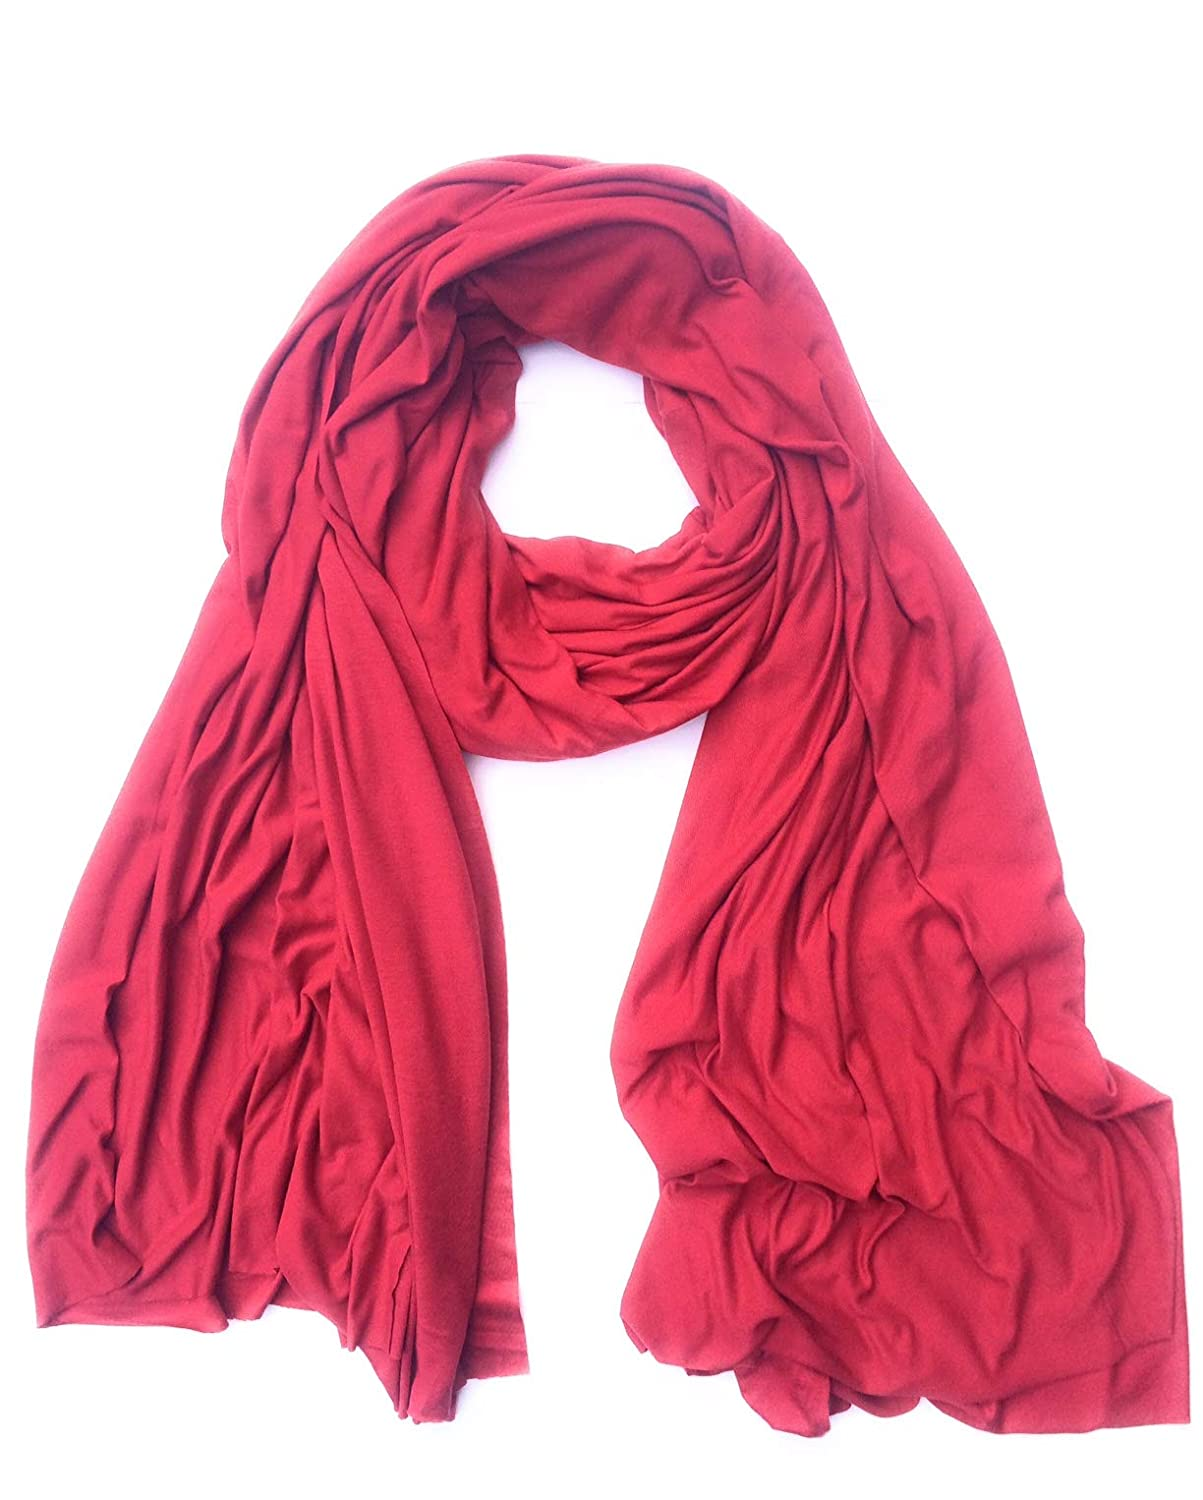 $32.99 SALE FLUXUS NOMAD SCARF HOT PINK TRAVEL WRAP SHAWL COTTON MADE IN USA